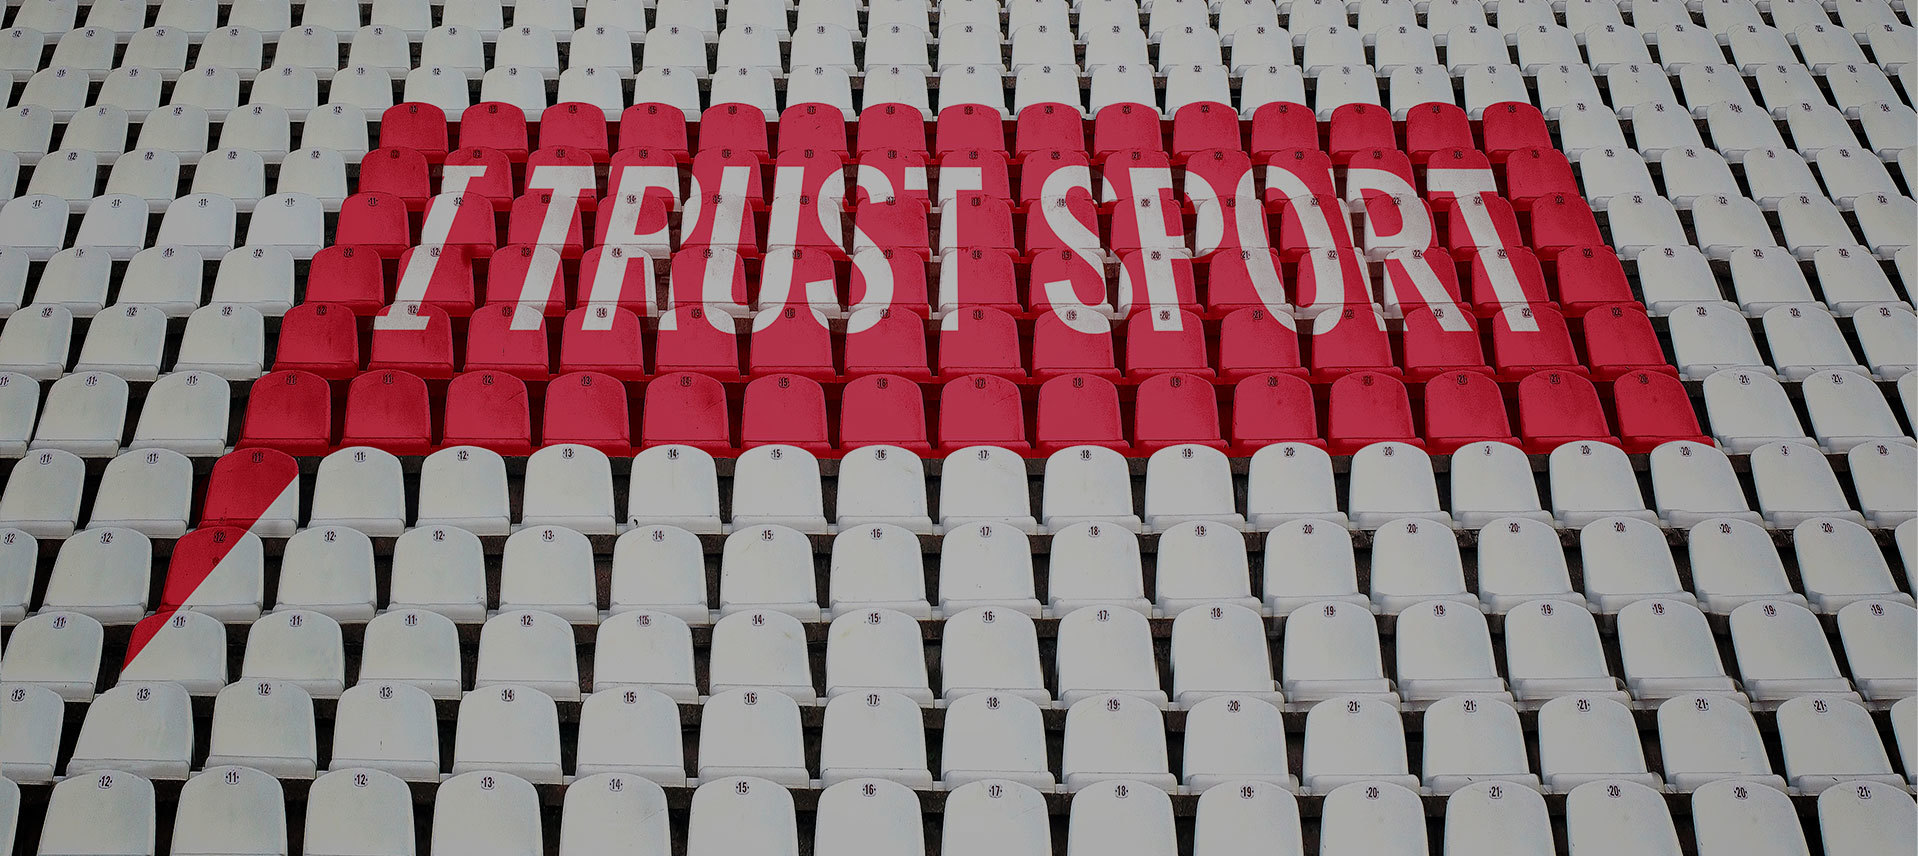 I Trust Sport provides support for ASOIF governance review of summer Olympic sports